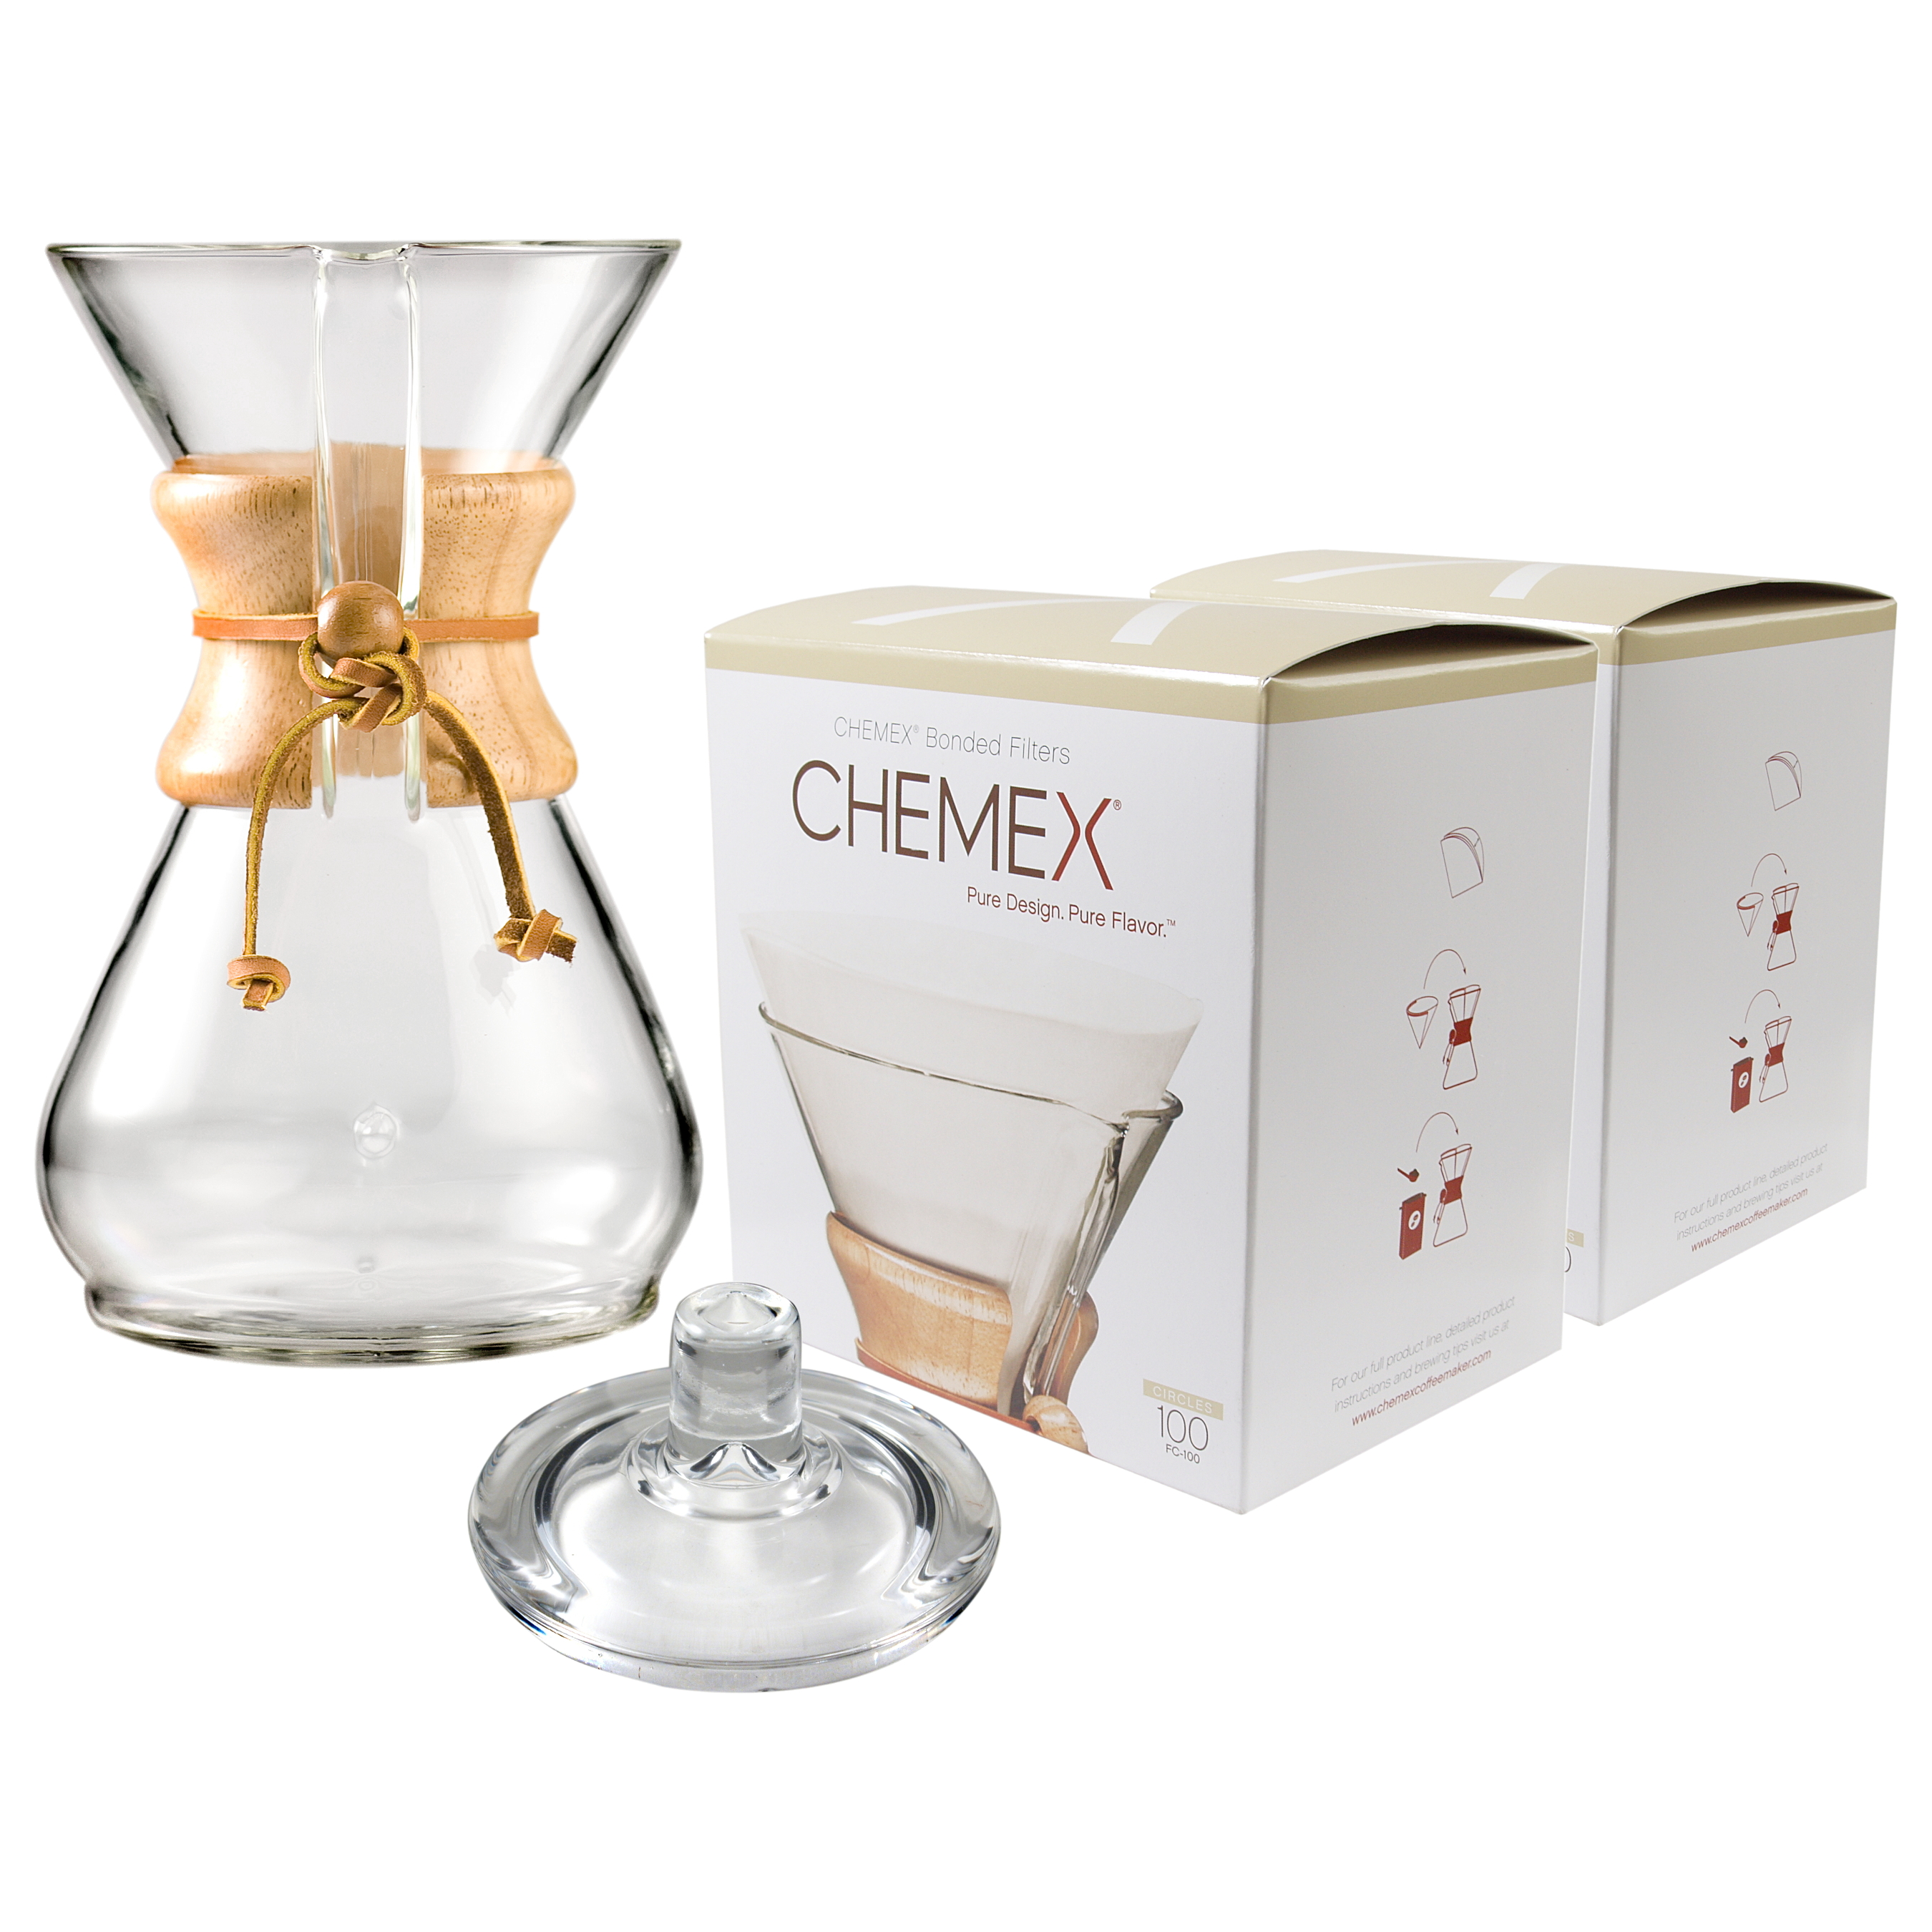 Chemex Classic Wood Collar and Tie Glass 40 Ounce Coffee Maker with Cover and 200 Count Bonded Circle Coffee Filters